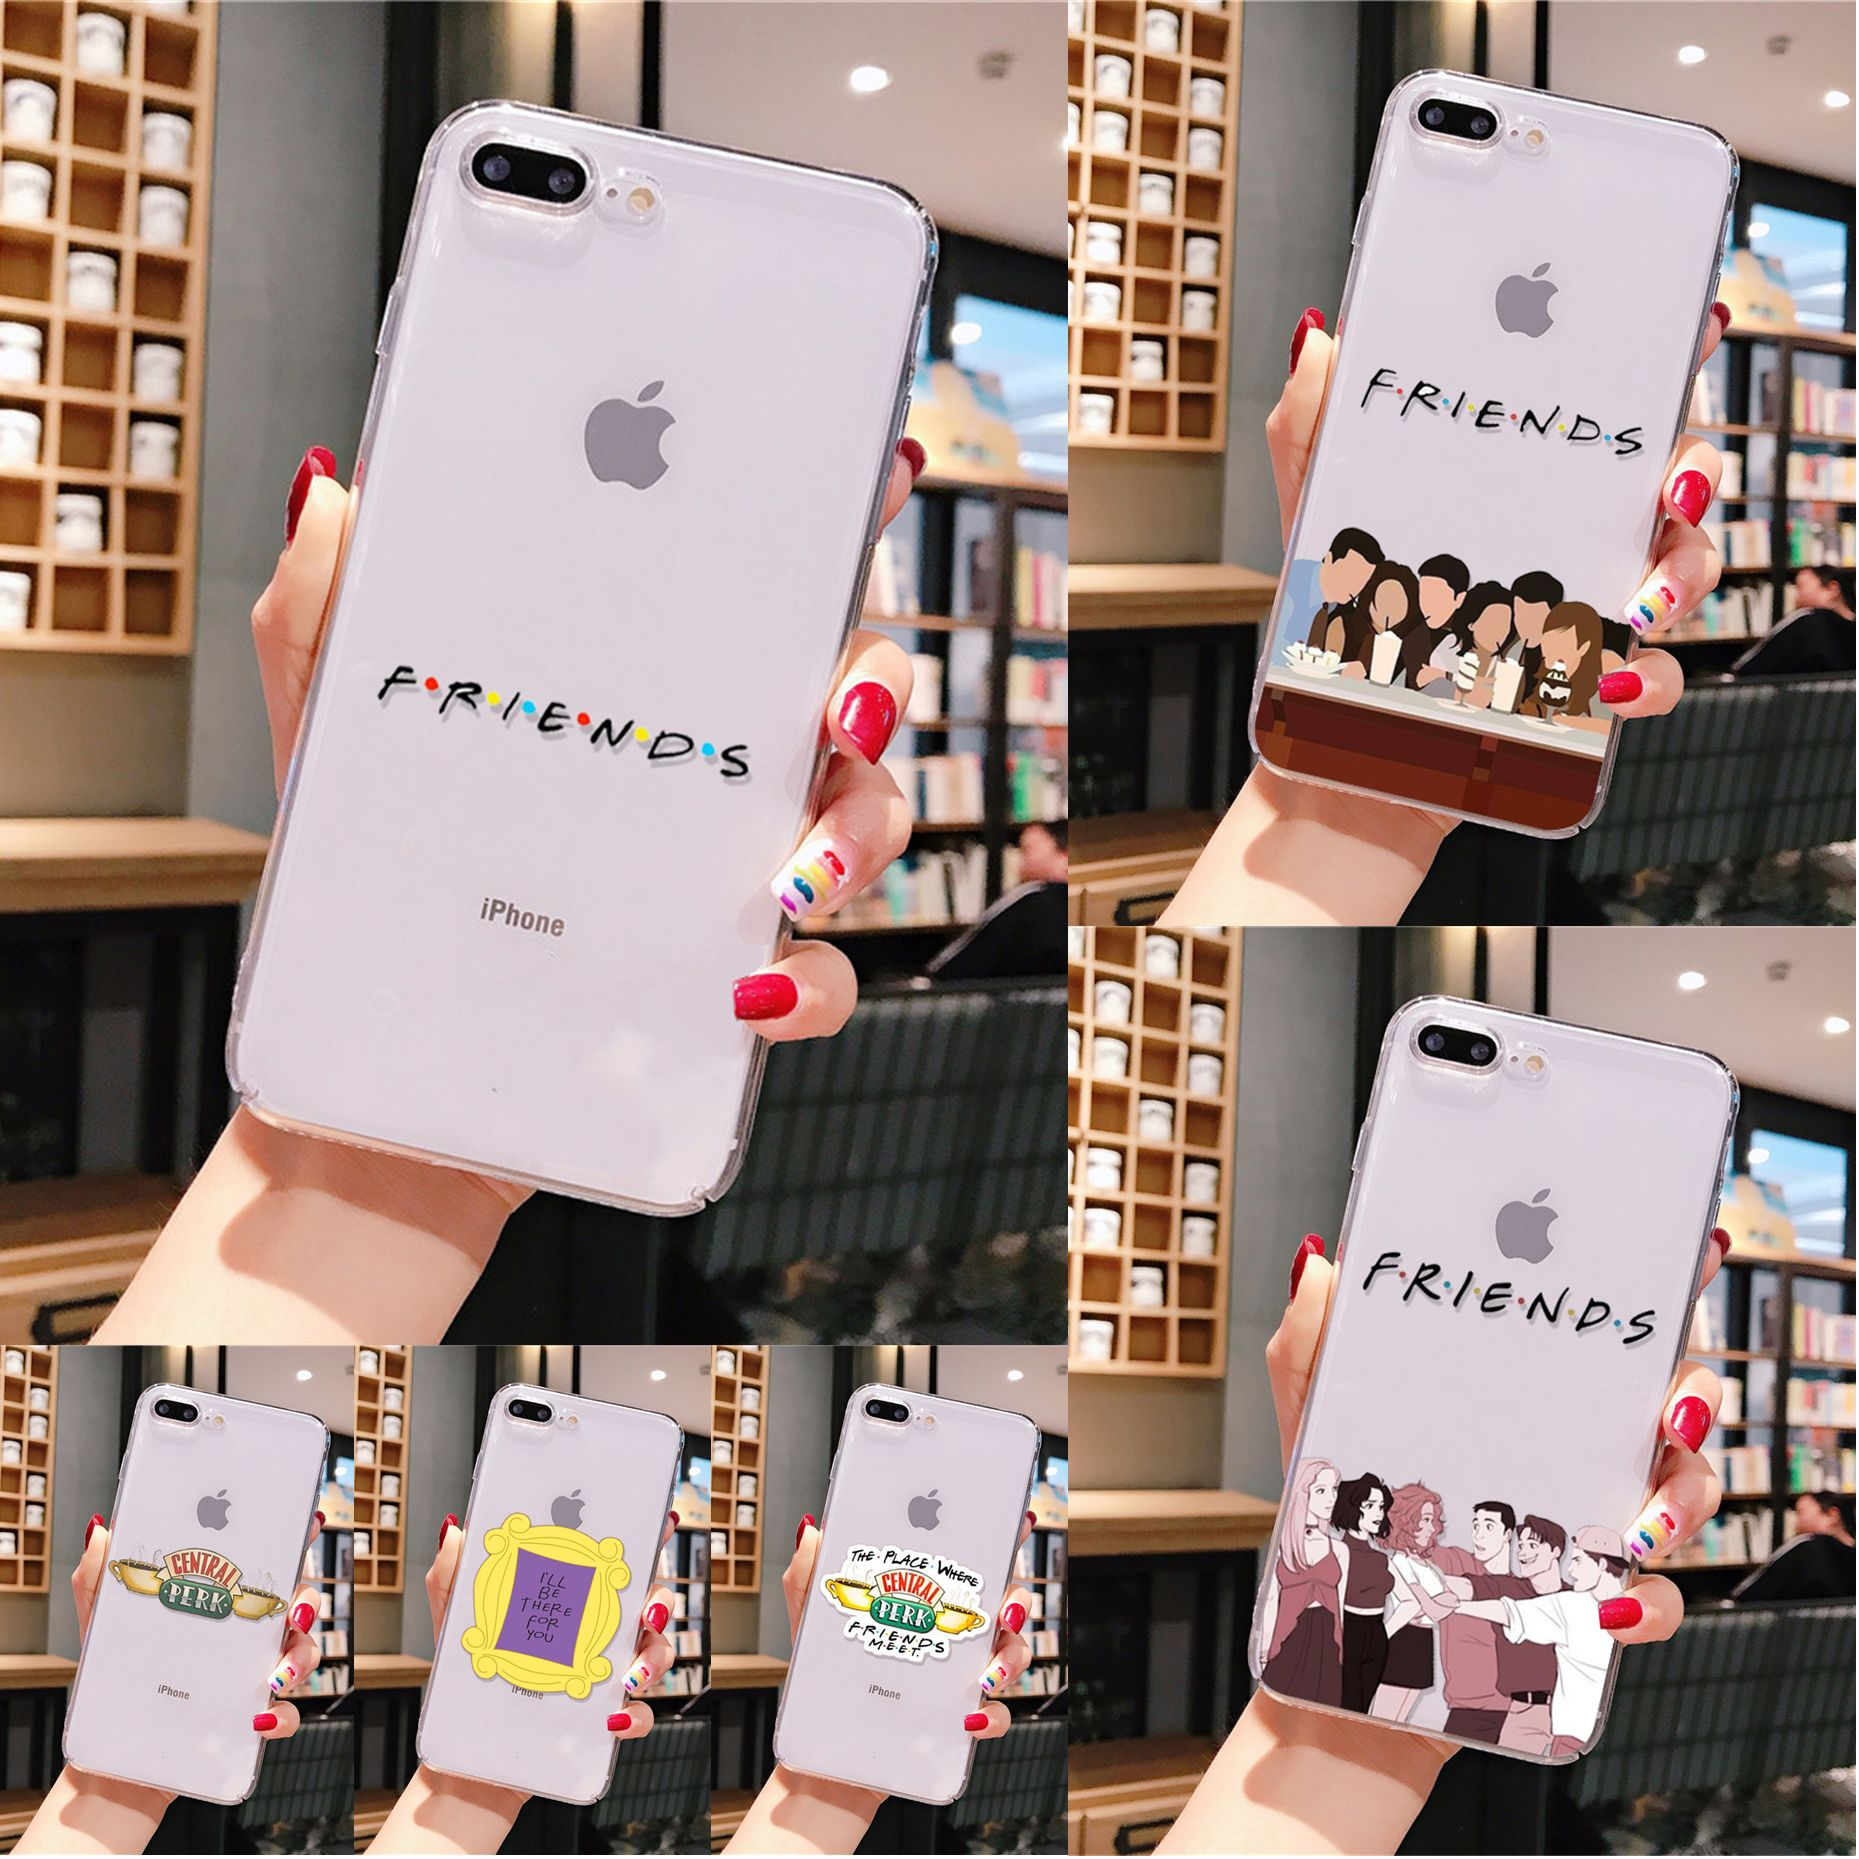 Yinuoda Freunde <font><b>tv</b></font> Smart Cover Transparent Weiche Shell Handy-Fall für <font><b>iPhone</b></font> 6S 6plus 7 7plus 8 8Plus X Xs MAX 5 5S XR 11 pro max image